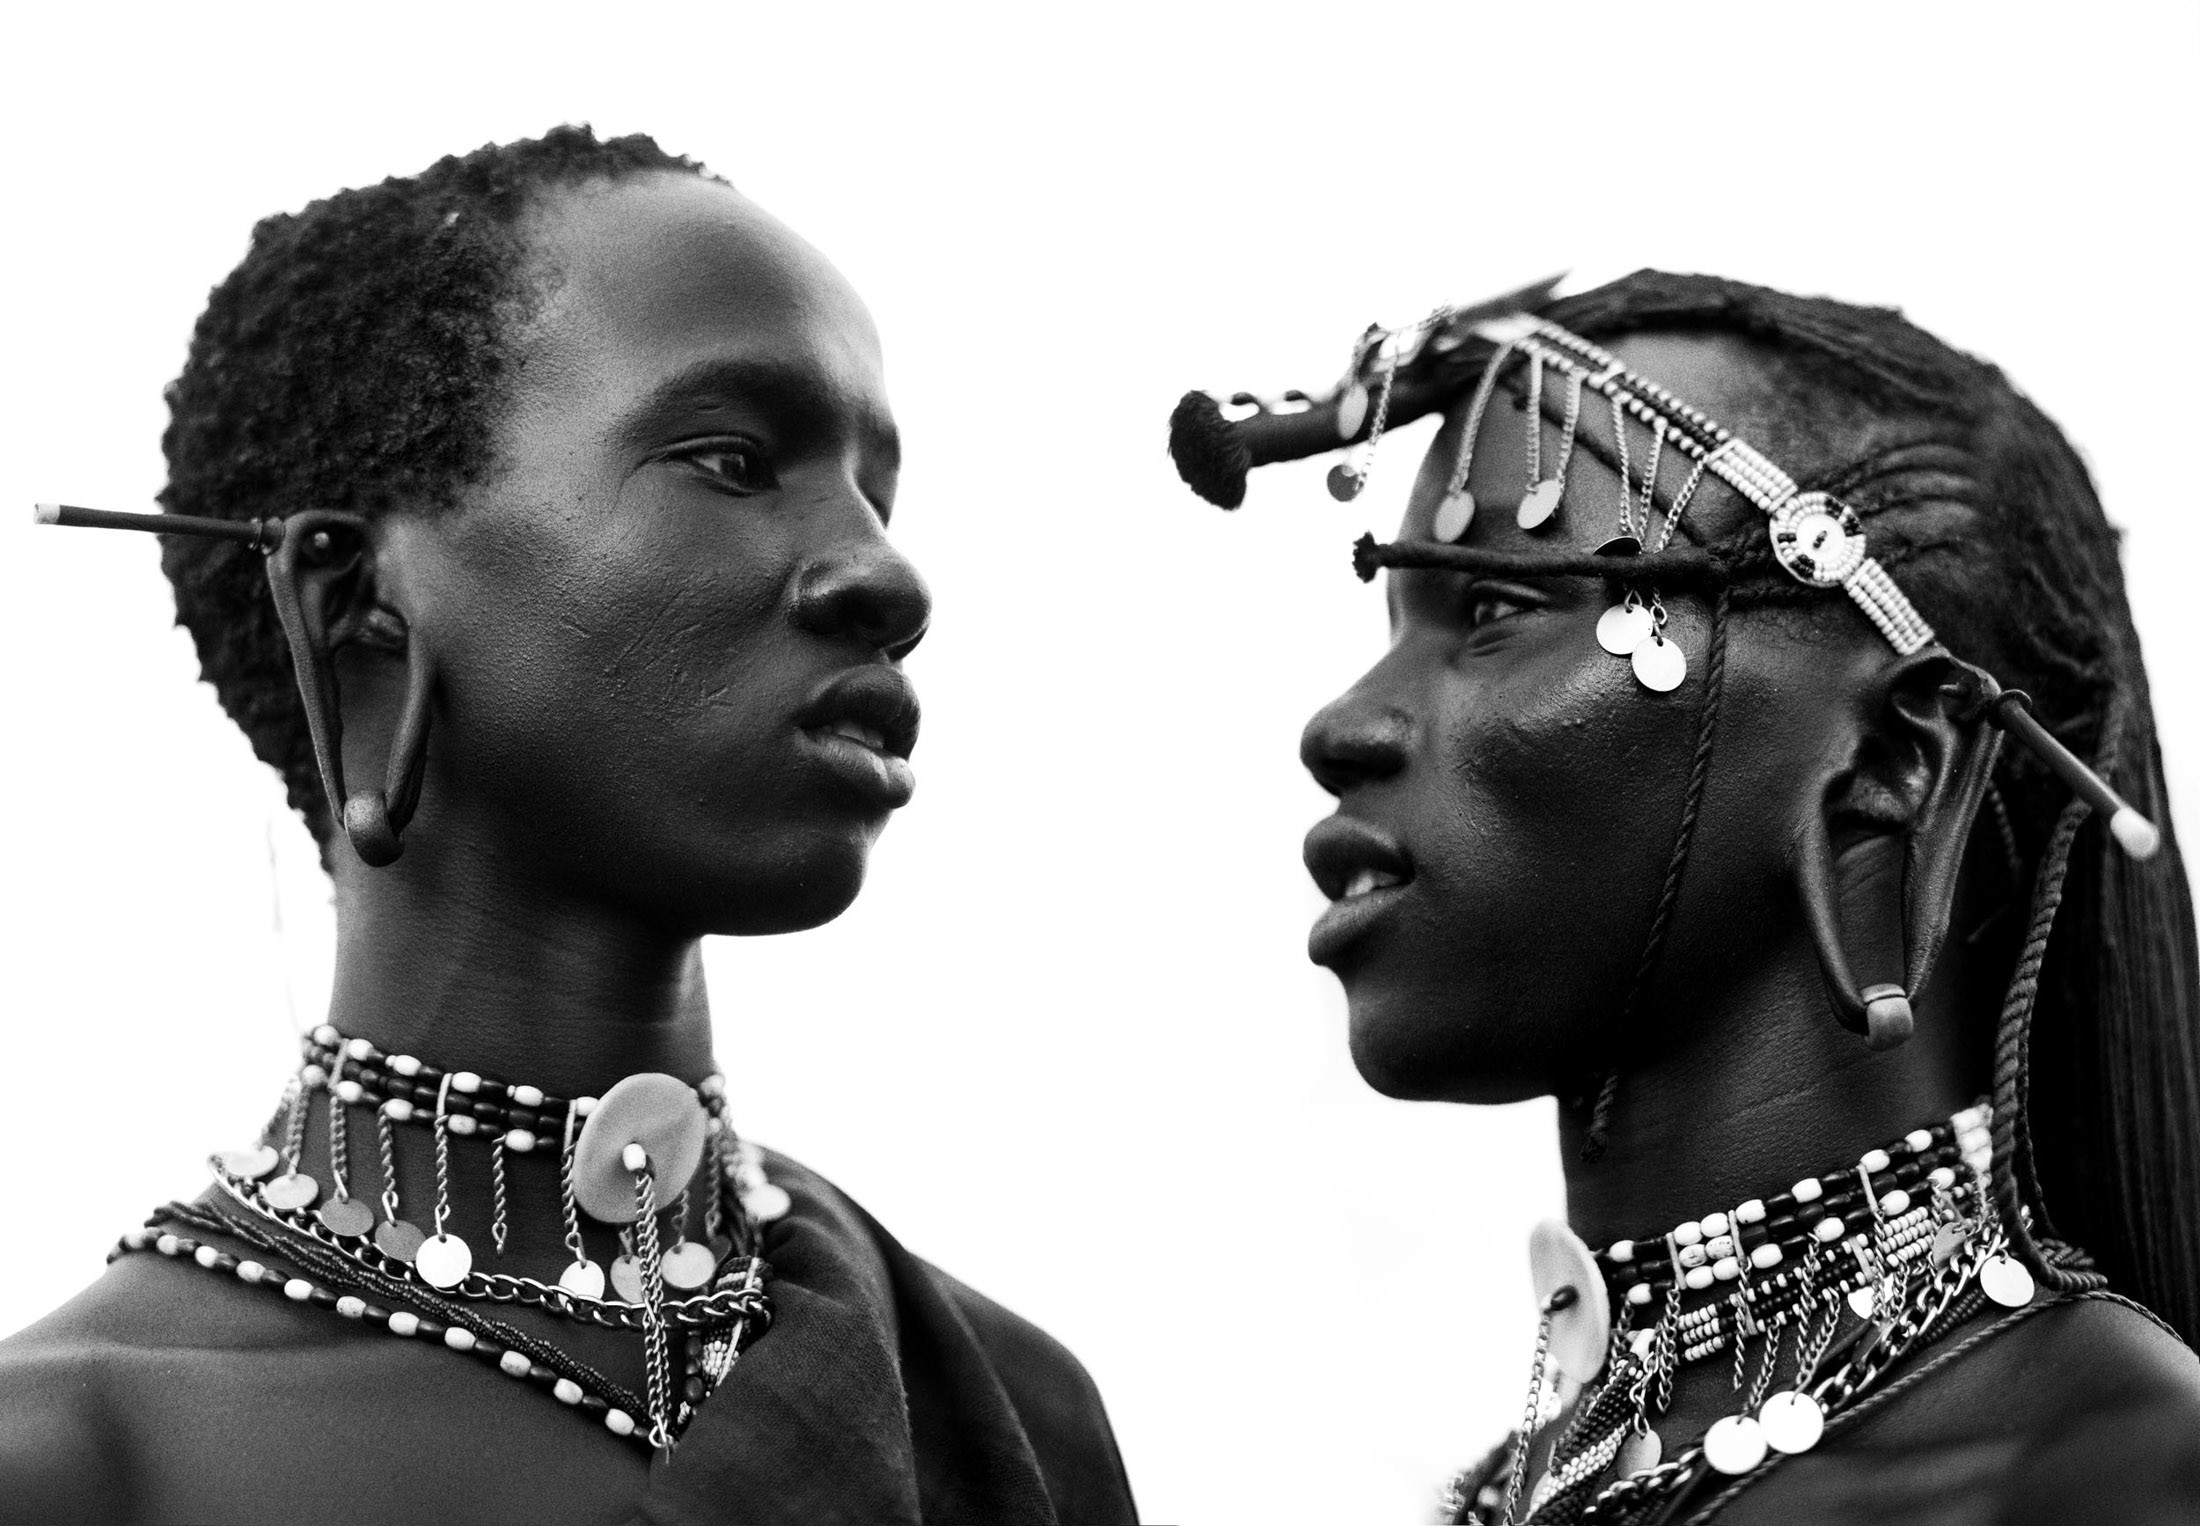 Stages of Maasai life are punctuated by observing social taboos and ceremonies, including coming-of- age initiations like circumcision and journeys away from their manyatta (village). The meat ceremony is called enkang oo-nkiri.